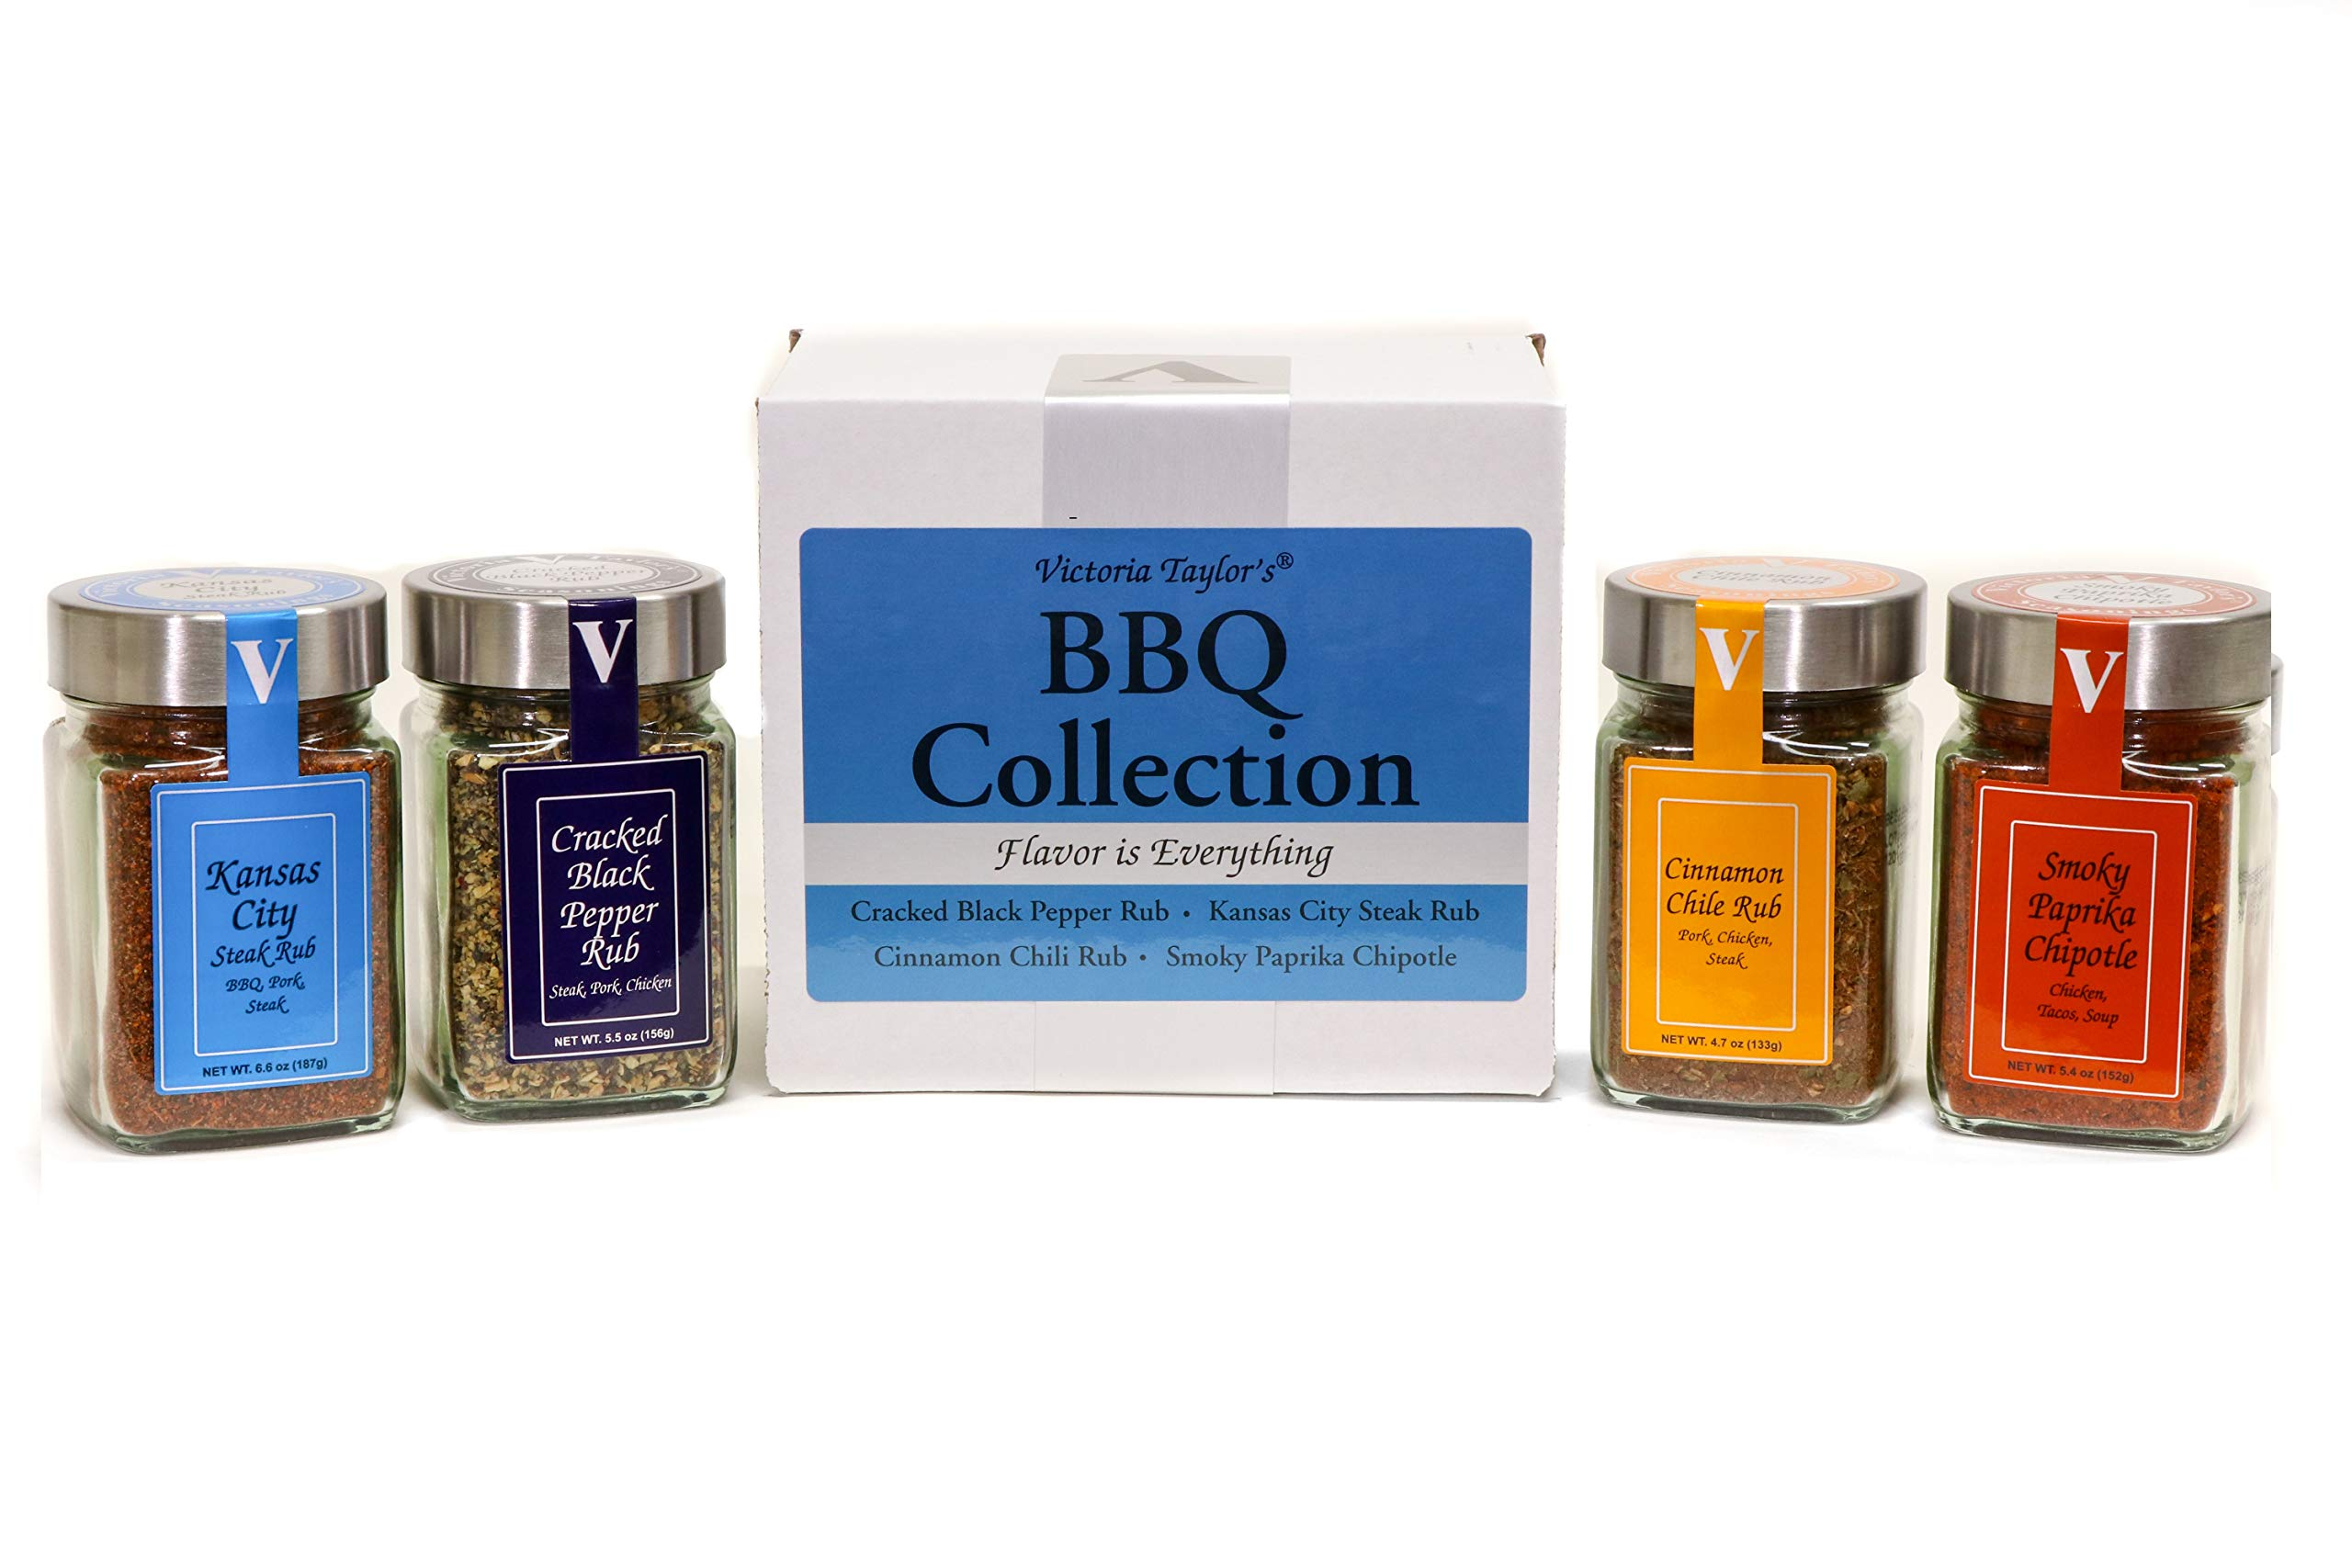 BBQ Collection - 4 rubs for grilling and BBQ. by Victoria Taylor's